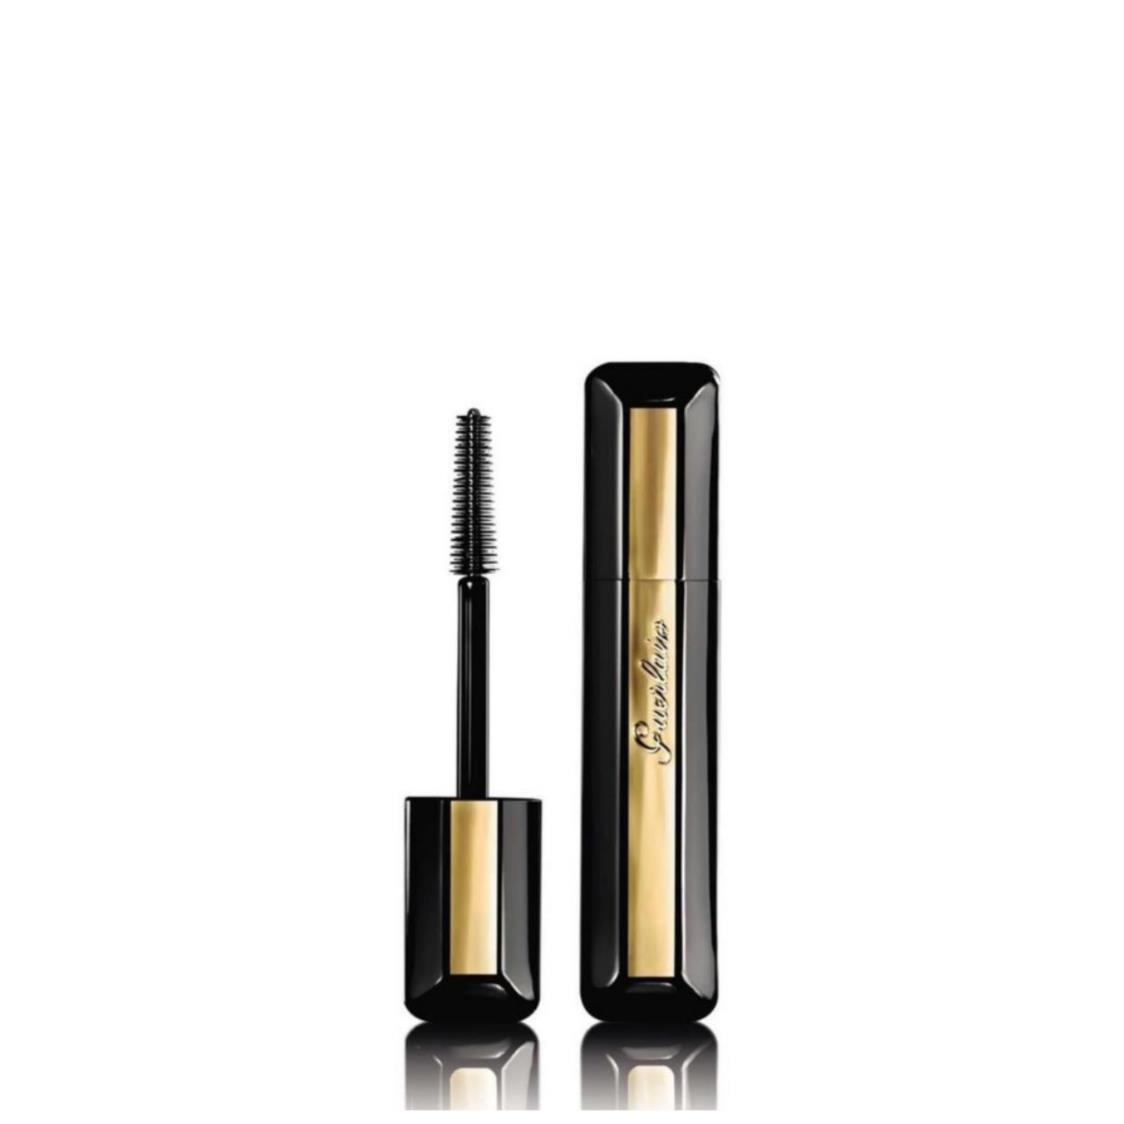 Guerlain Maxi Lash So Volume Intense Volume Deep Black Mascara Noir